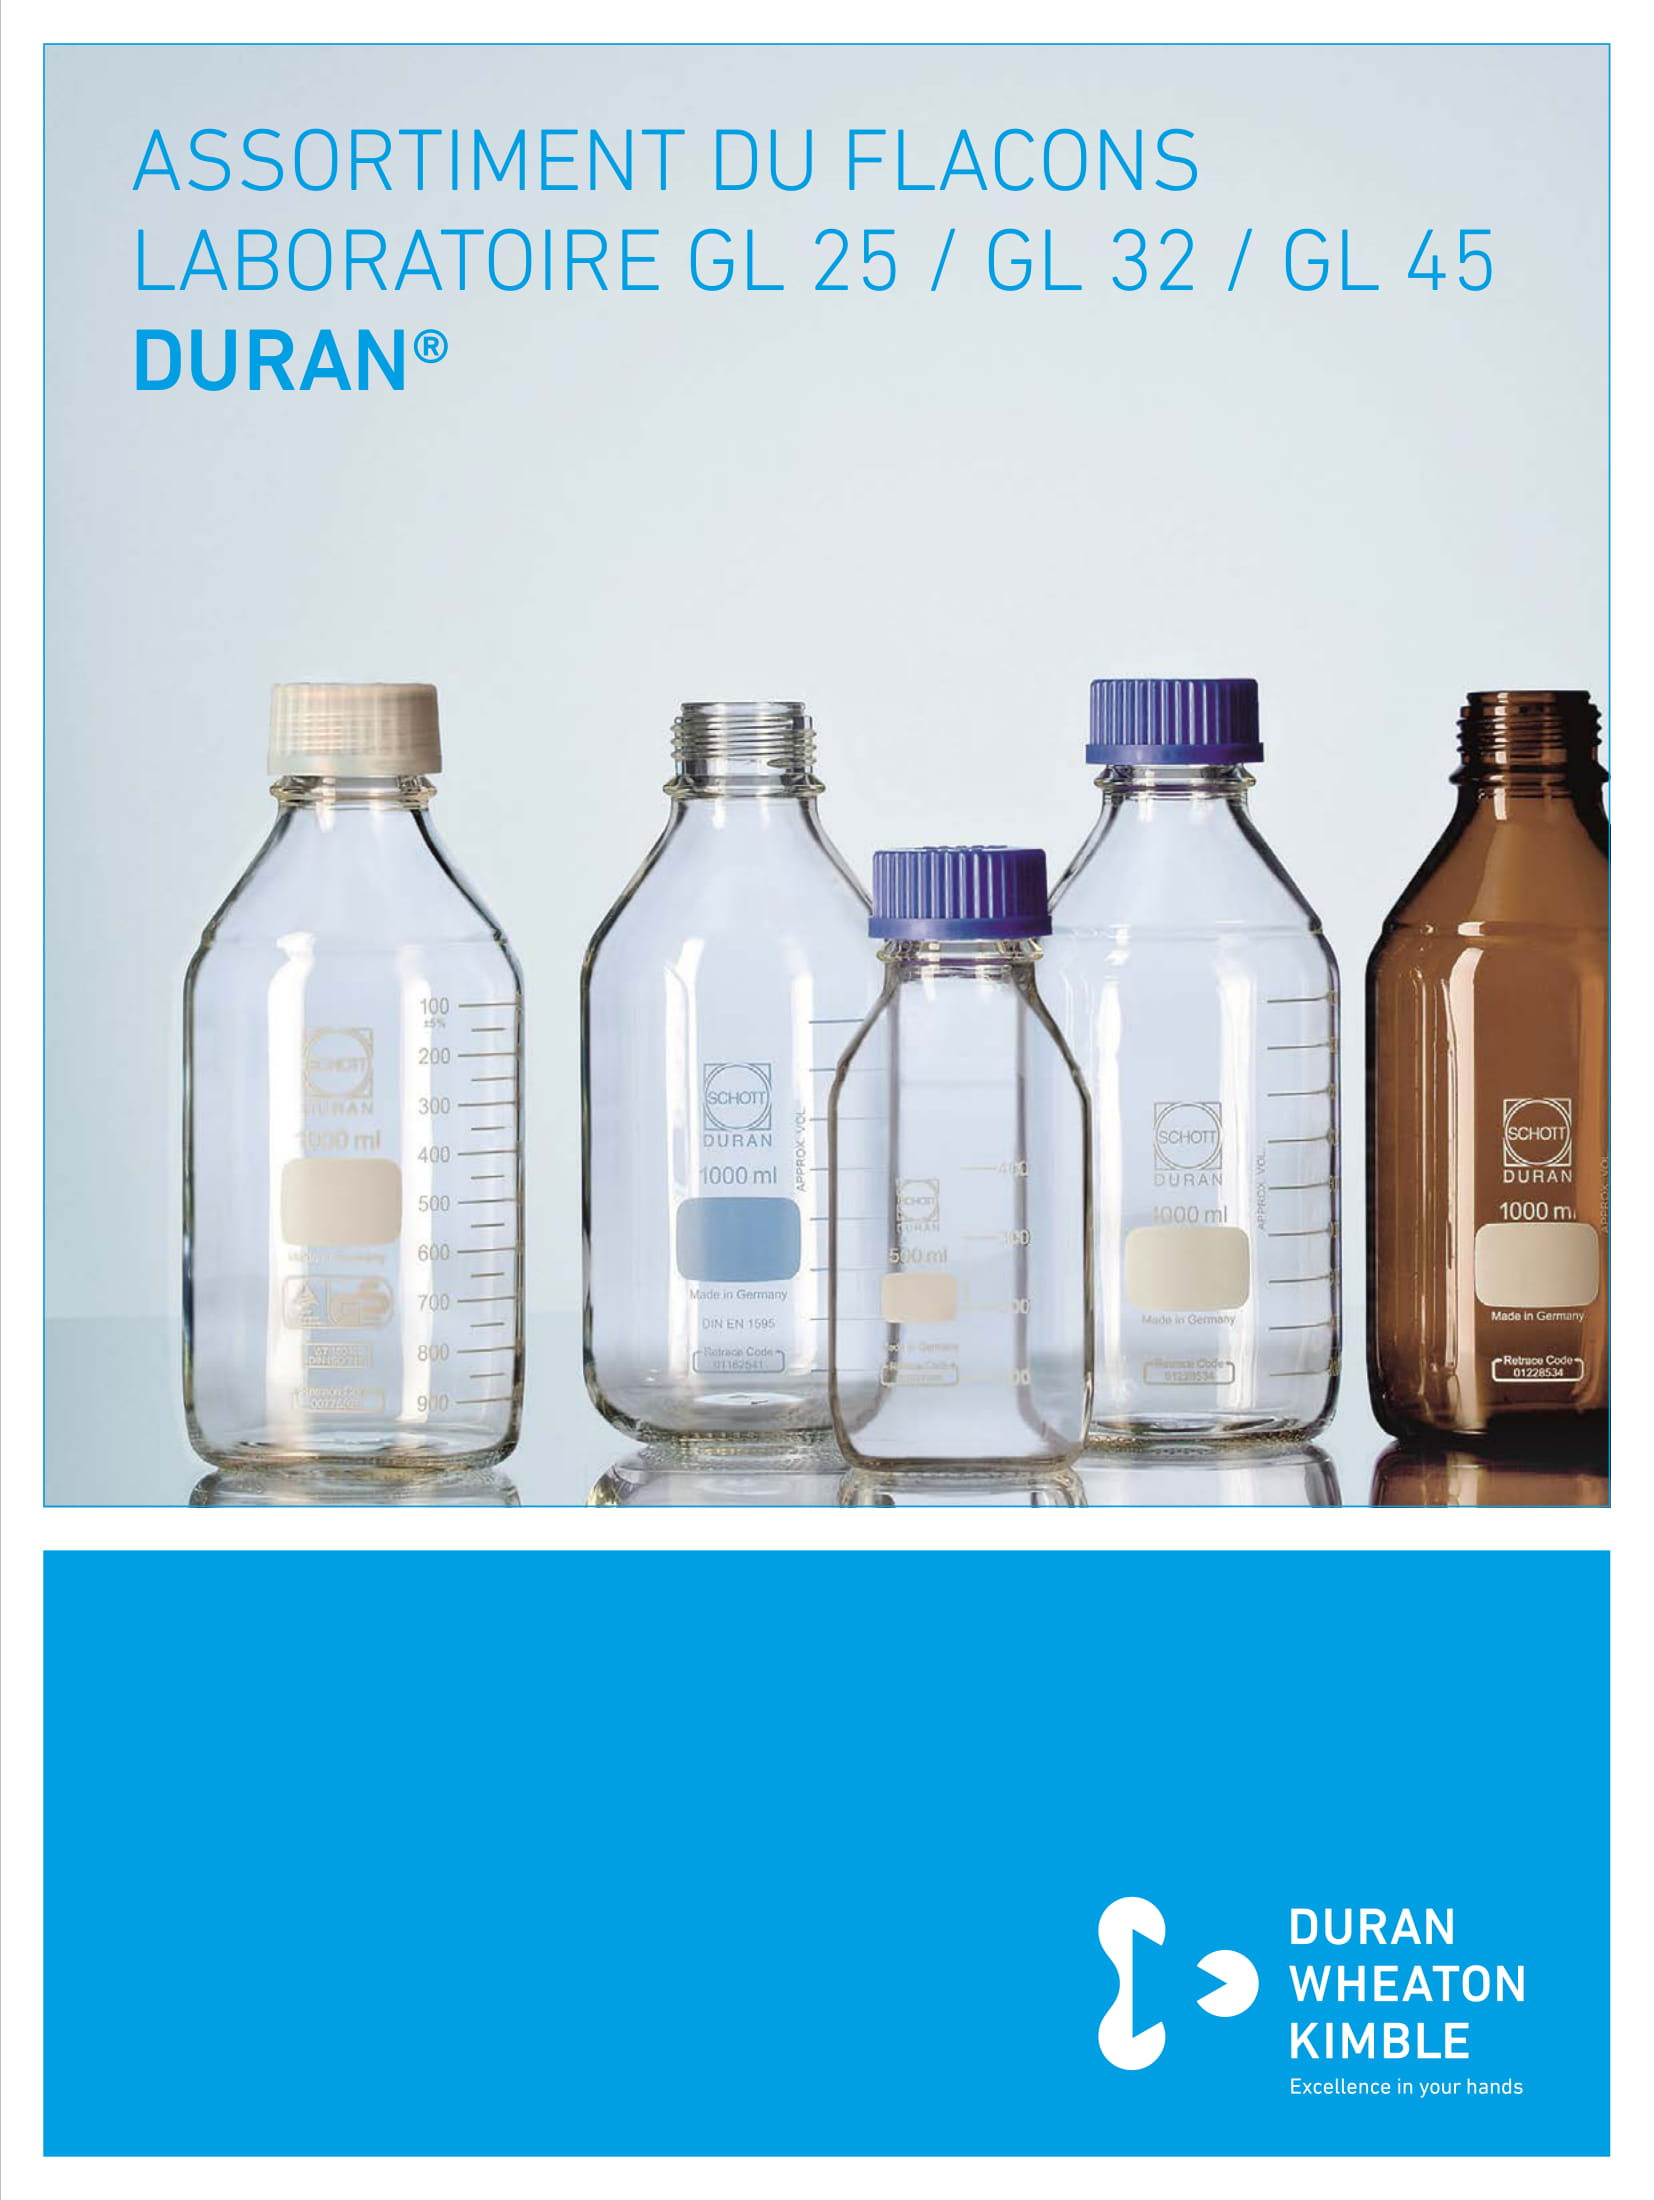 DURAN® Range of GL 25 / GL 32 / GL 45 Bottles